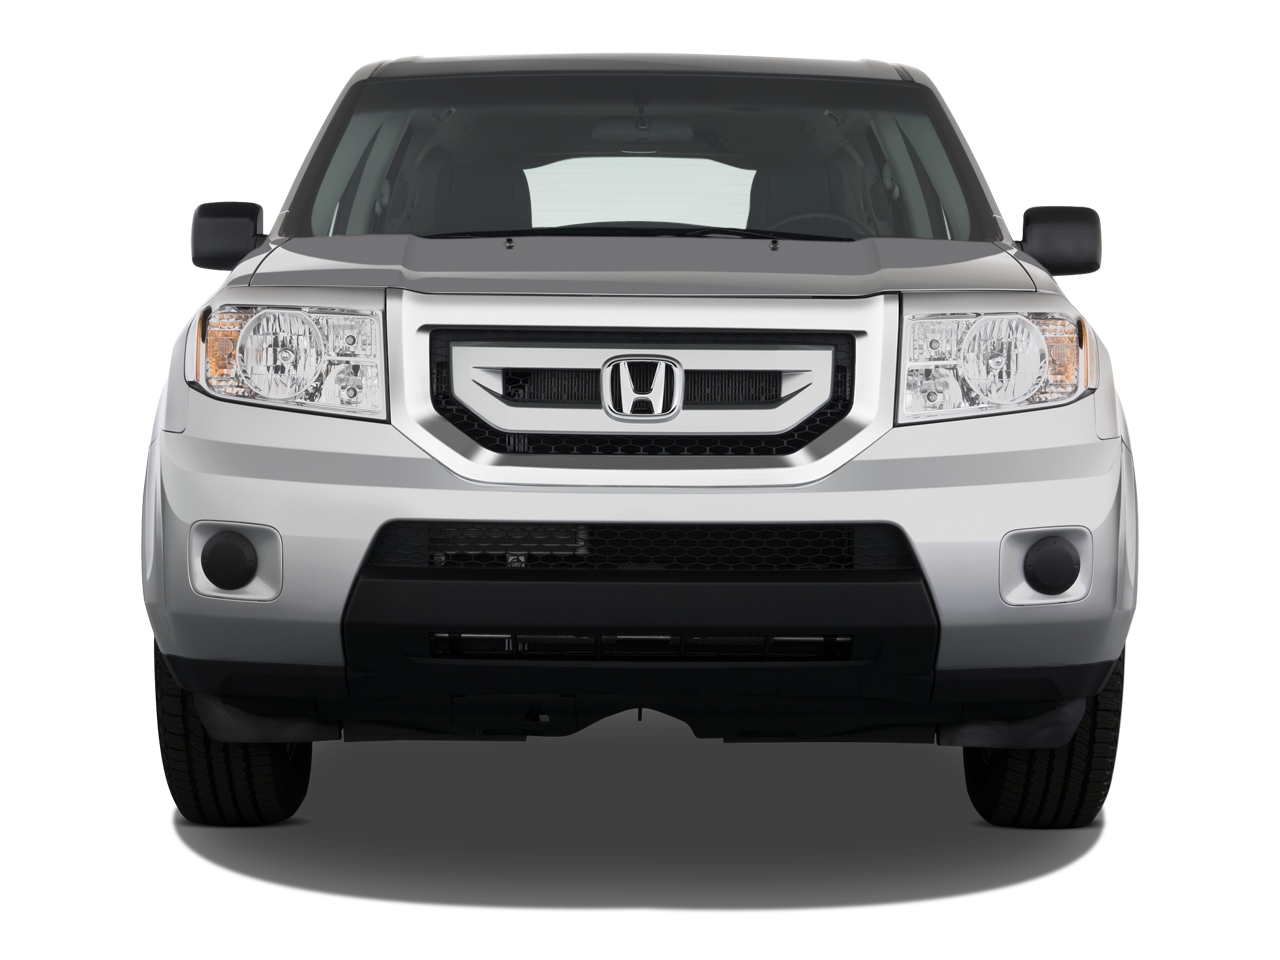 2009 Honda Pilot - Honda Fullsize SUV Review - Automobile